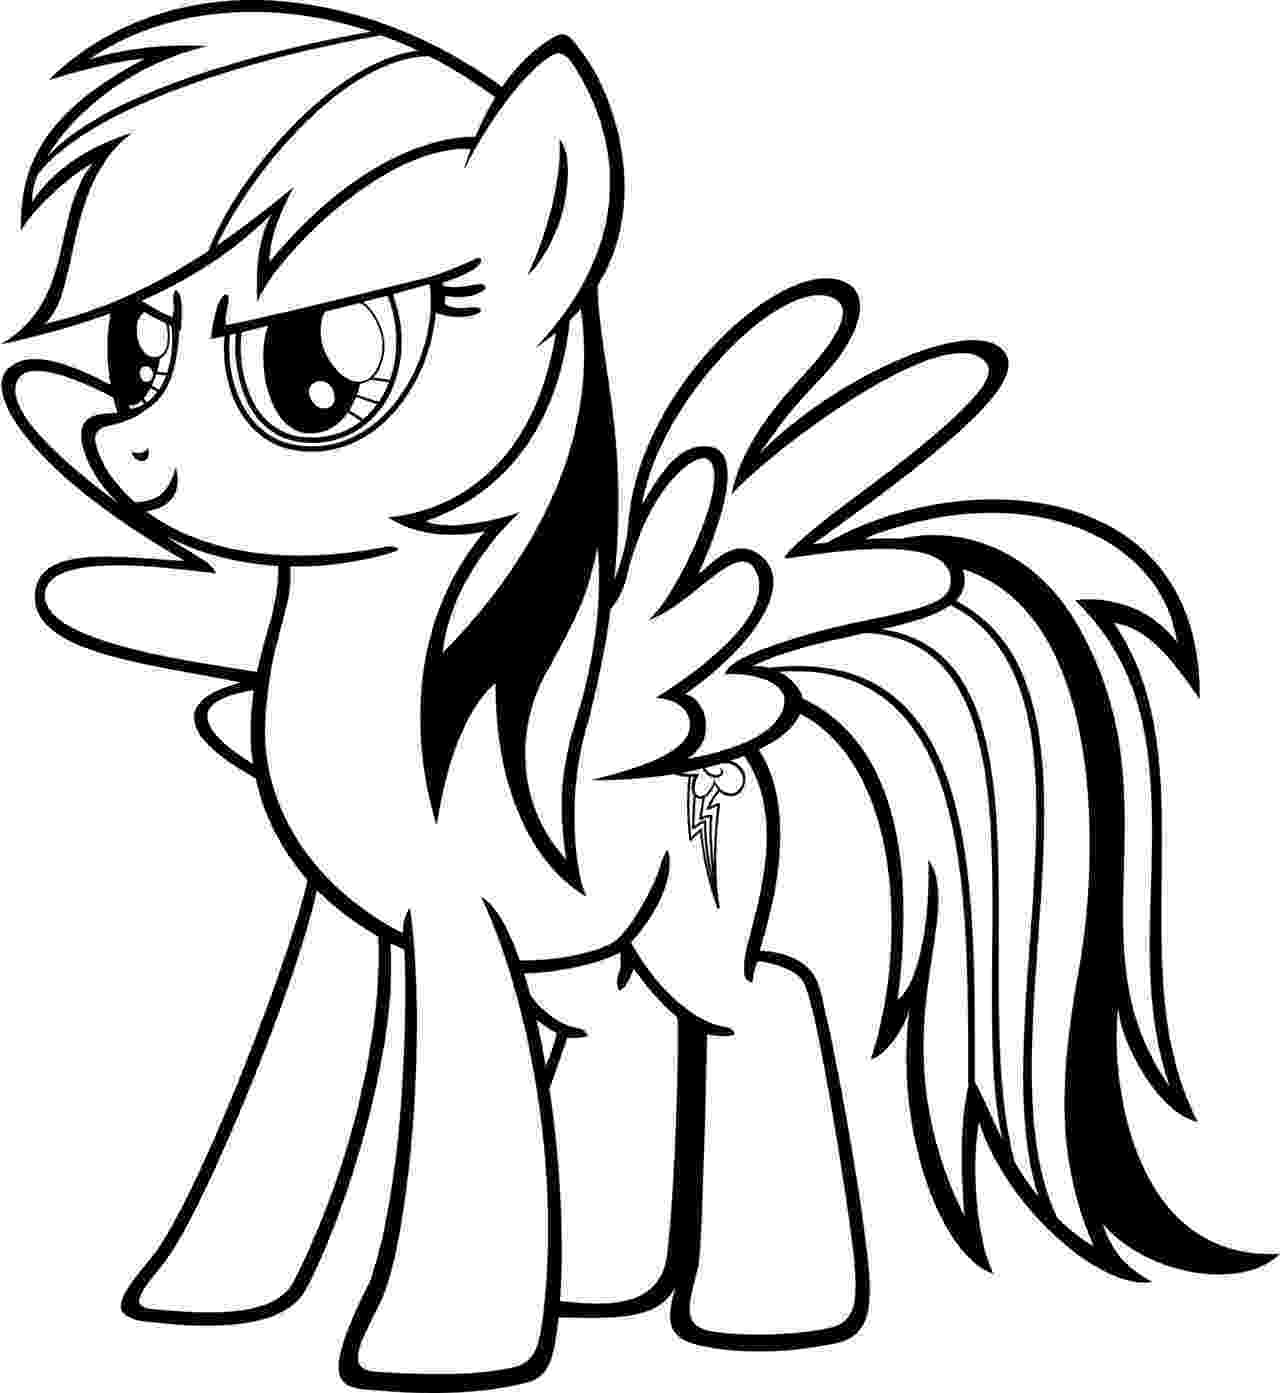 rainbow dash color page rainbow dash coloring pages best coloring pages for kids rainbow page dash color